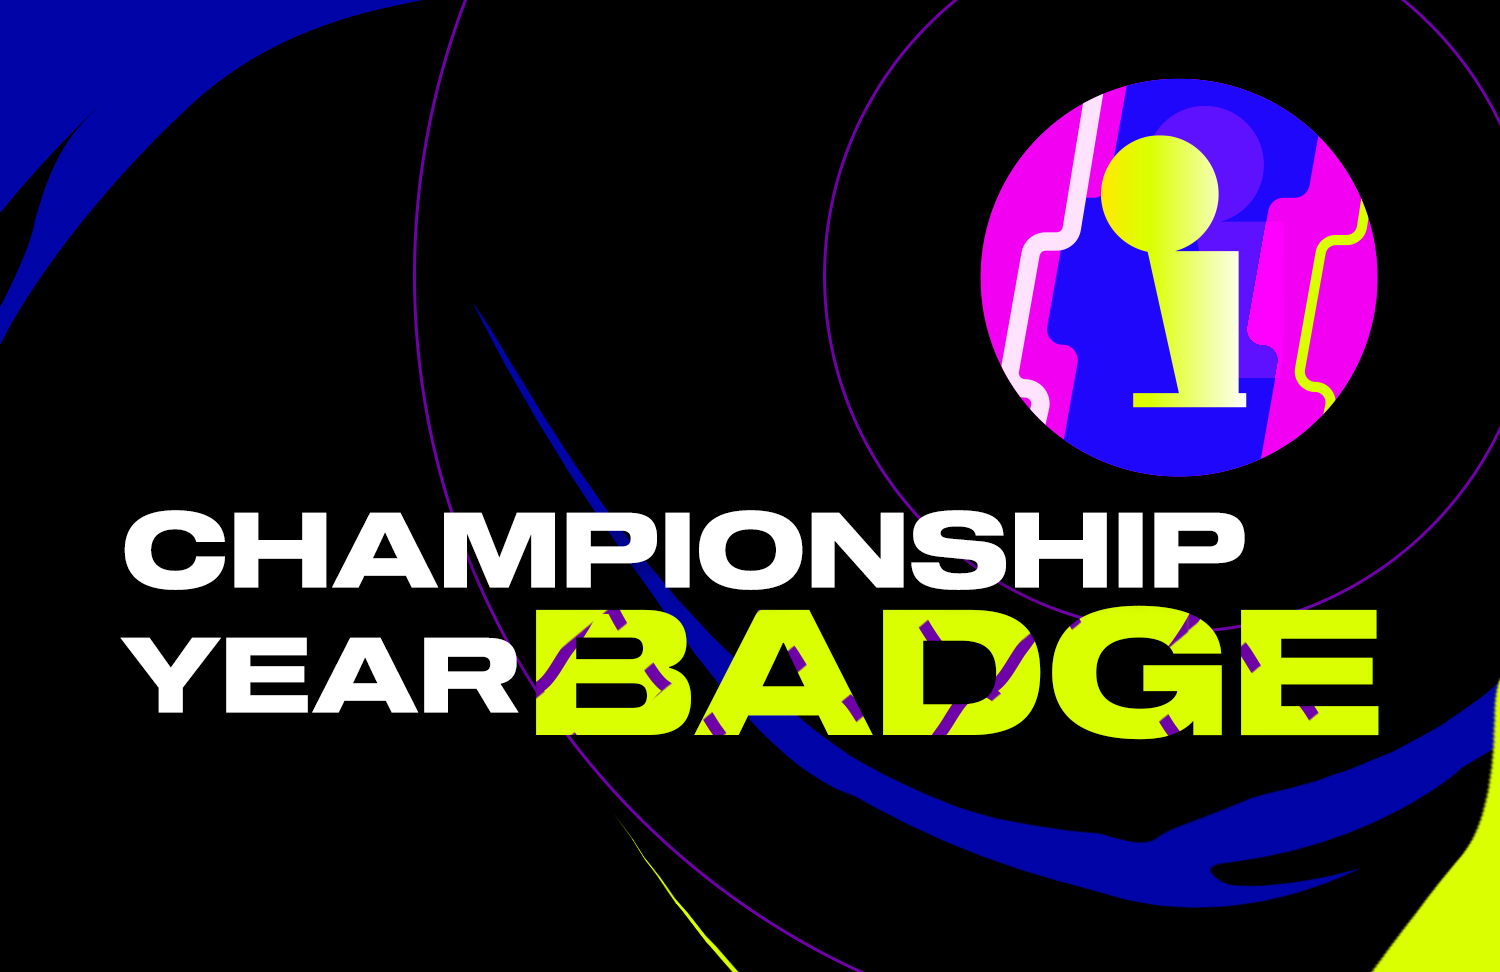 We have a brand new badge to celebrate the NBA Finals...